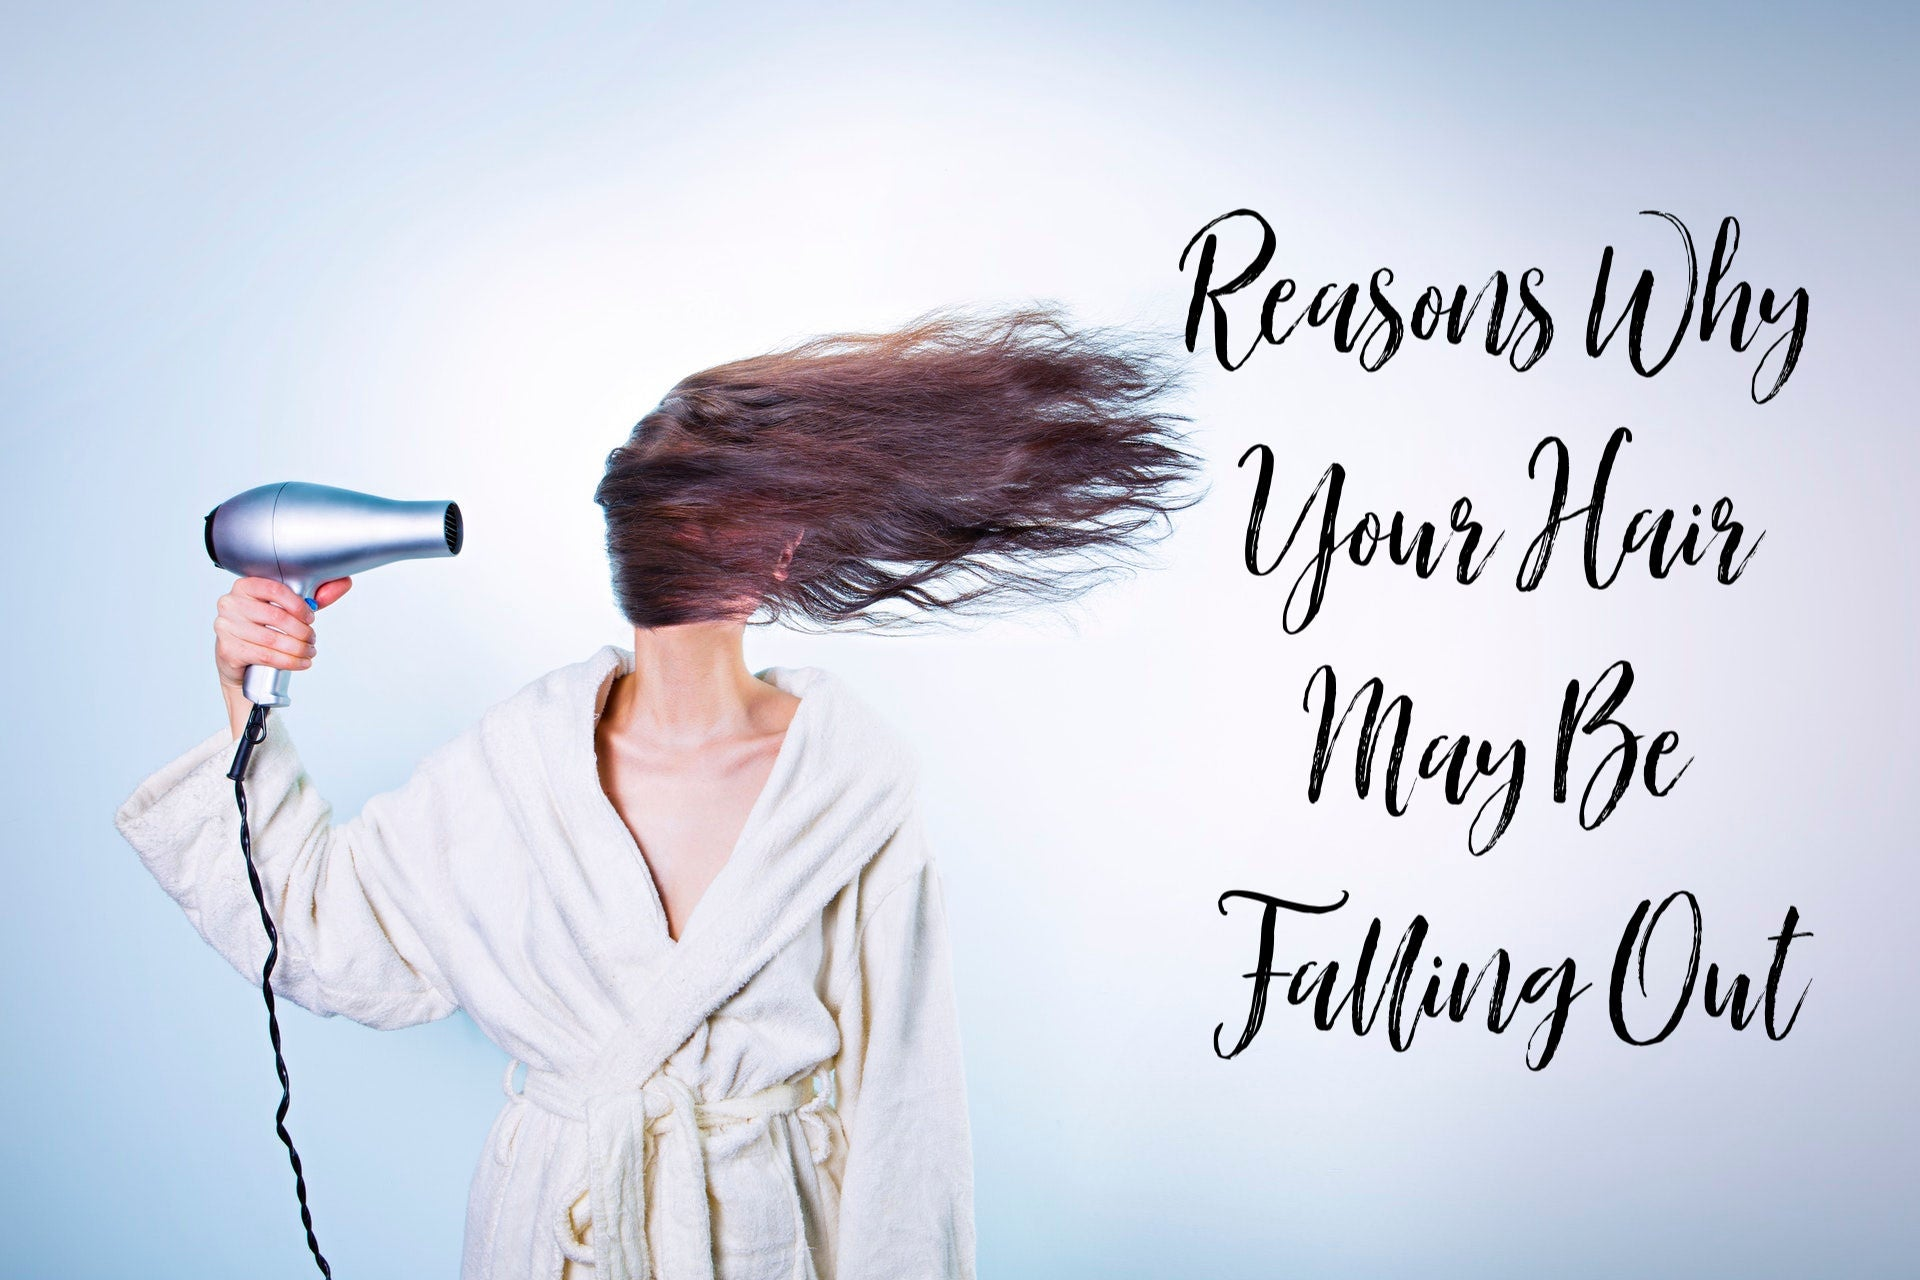 Hair Falling Out? Here are some reasons why that might be happening. #hairloss #haircare #health